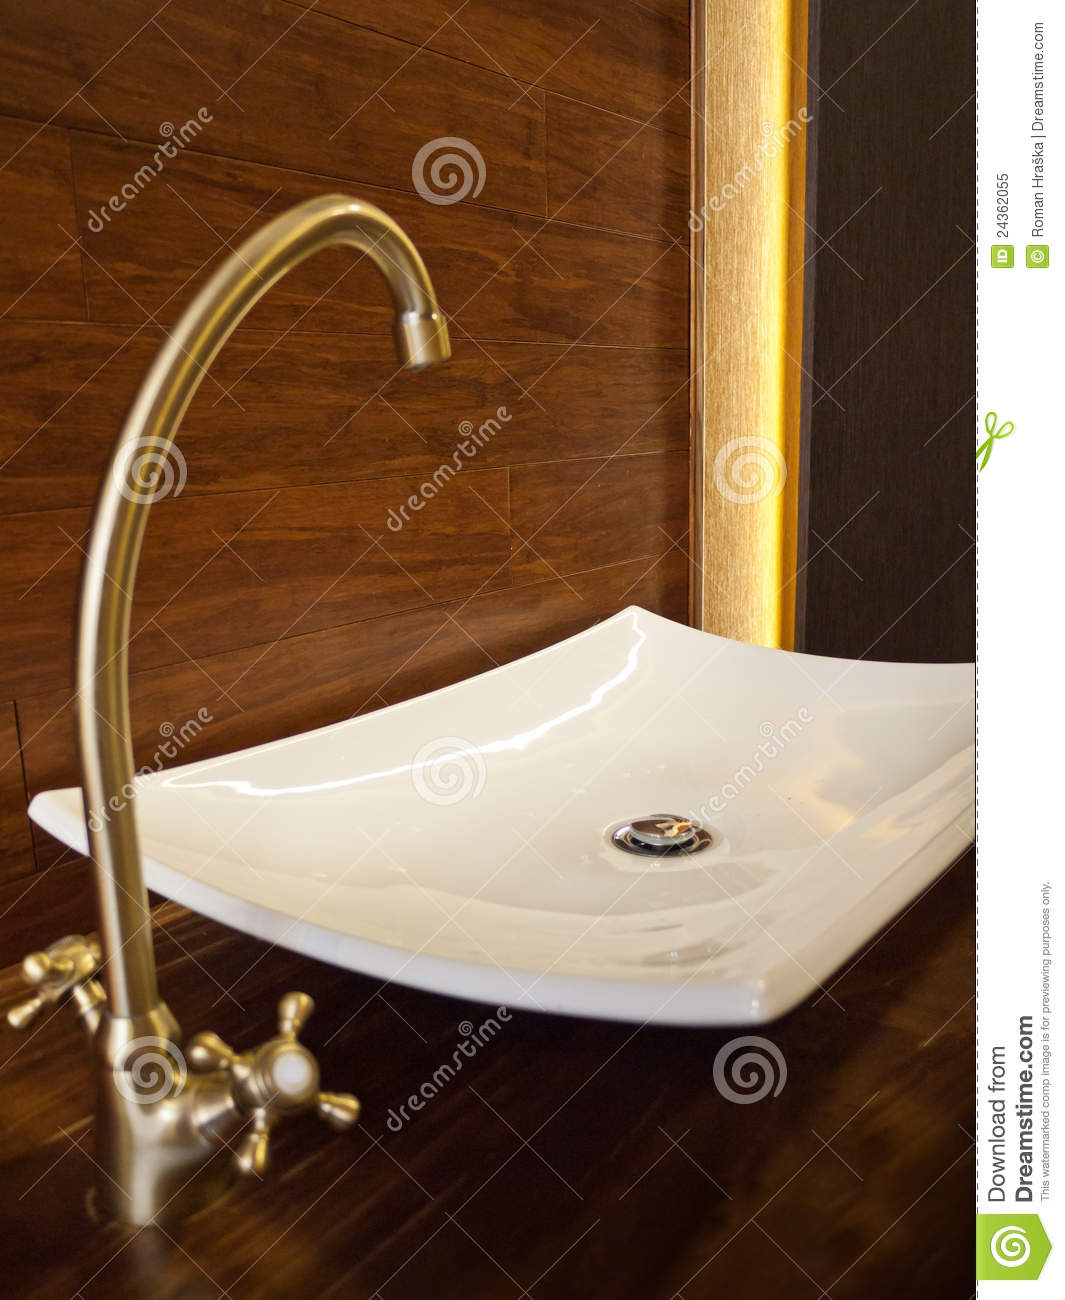 Elegant Bathroom Sinks: Elegant Sink Stock Image. Image Of Luxury, Ceramic